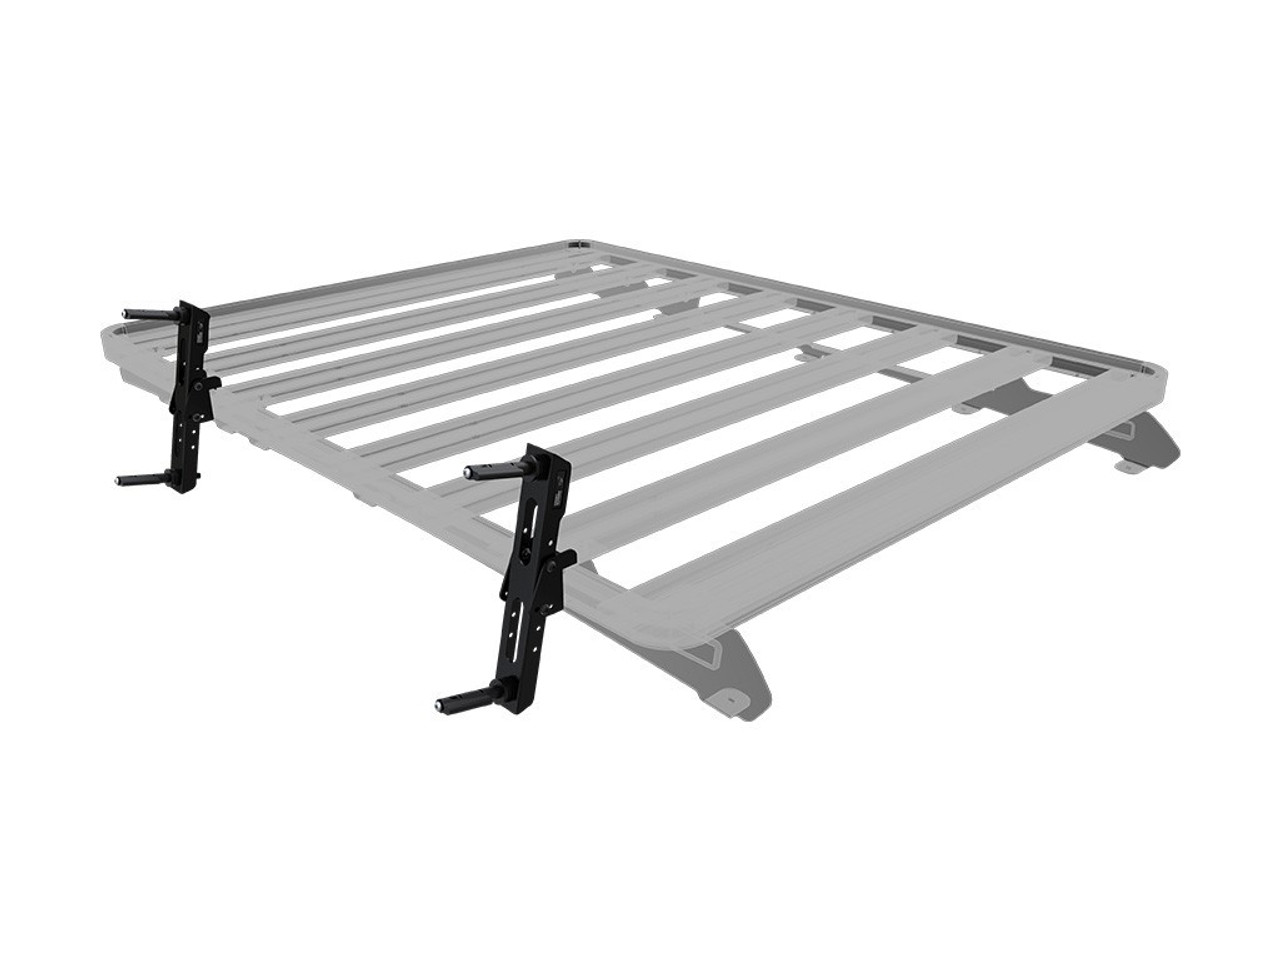 Recovery Device & Gear Holding Side Bracket (RRAC103) , used with Slim Line II Load Rack